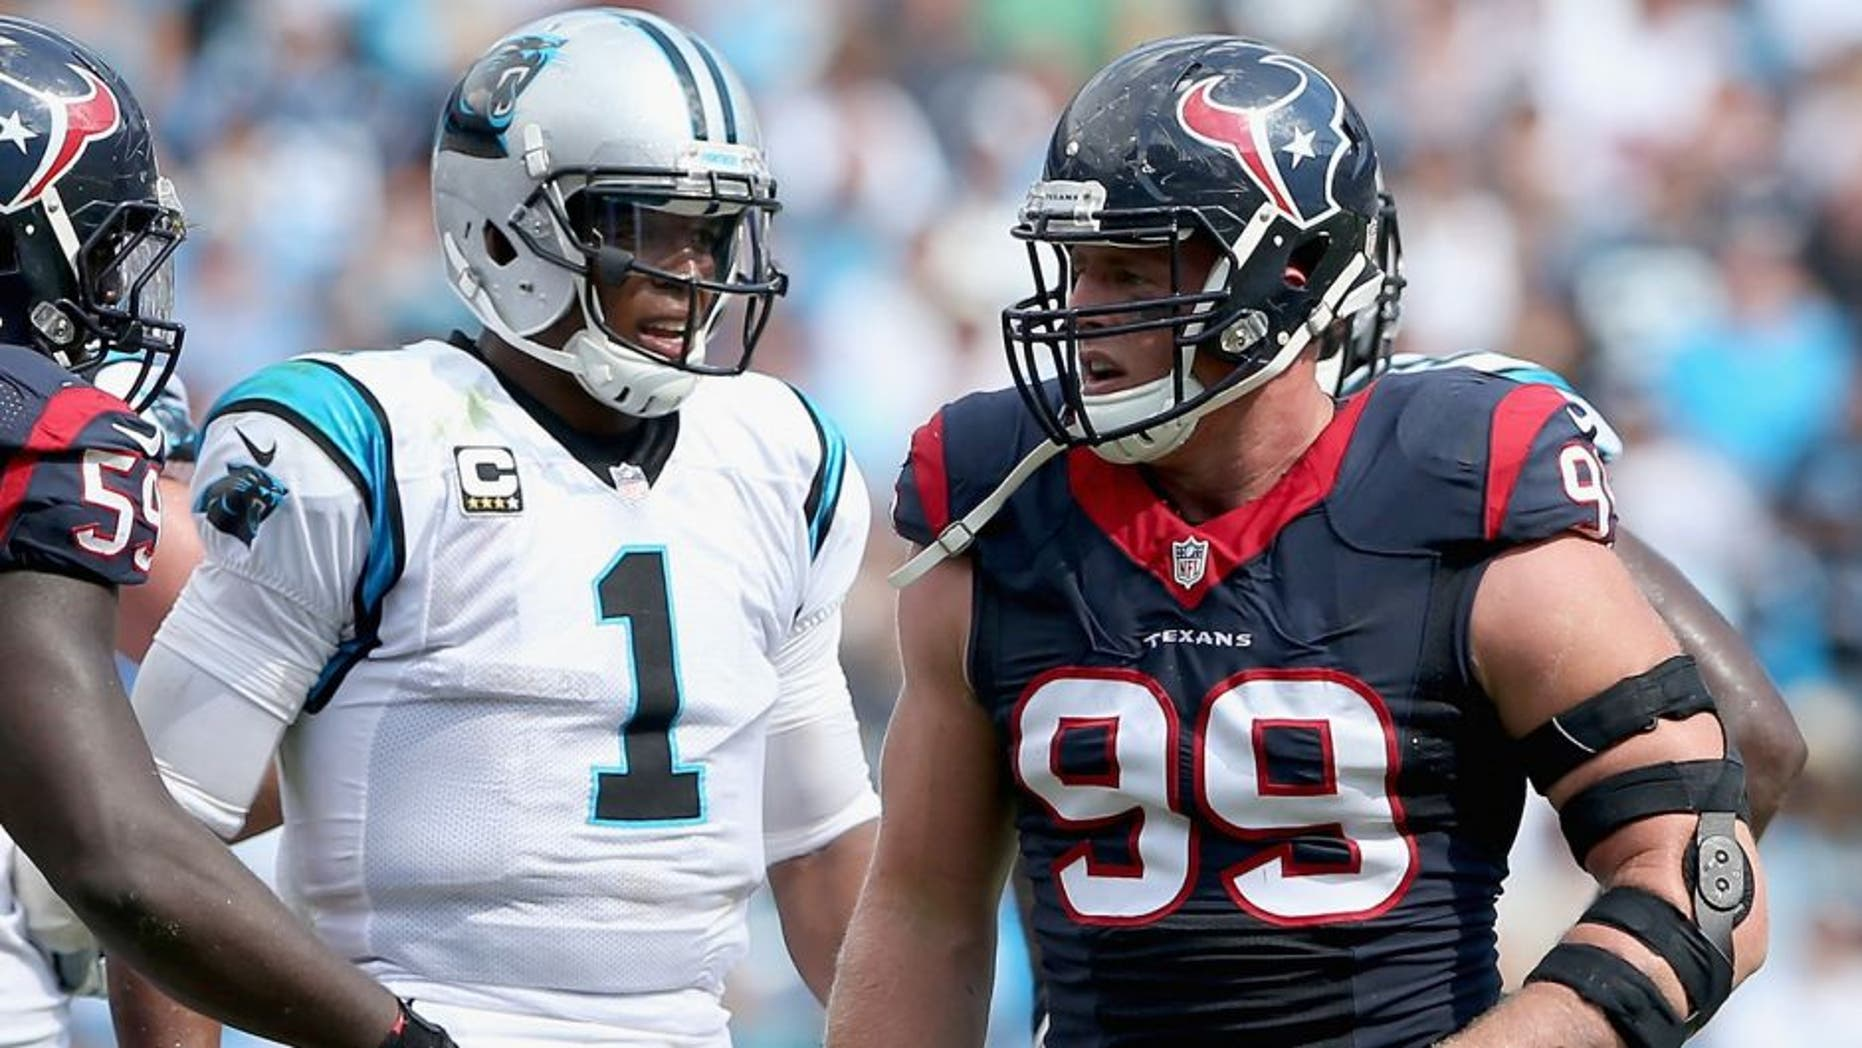 CHARLOTTE, NC - SEPTEMBER 20: Cam Newton #1 of the Carolina Panthers and J.J. Watt #99 of the Houston Texans in action during their game at Bank of America Stadium on September 20, 2015 in Charlotte, North Carolina. (Photo by Streeter Lecka/Getty Images)